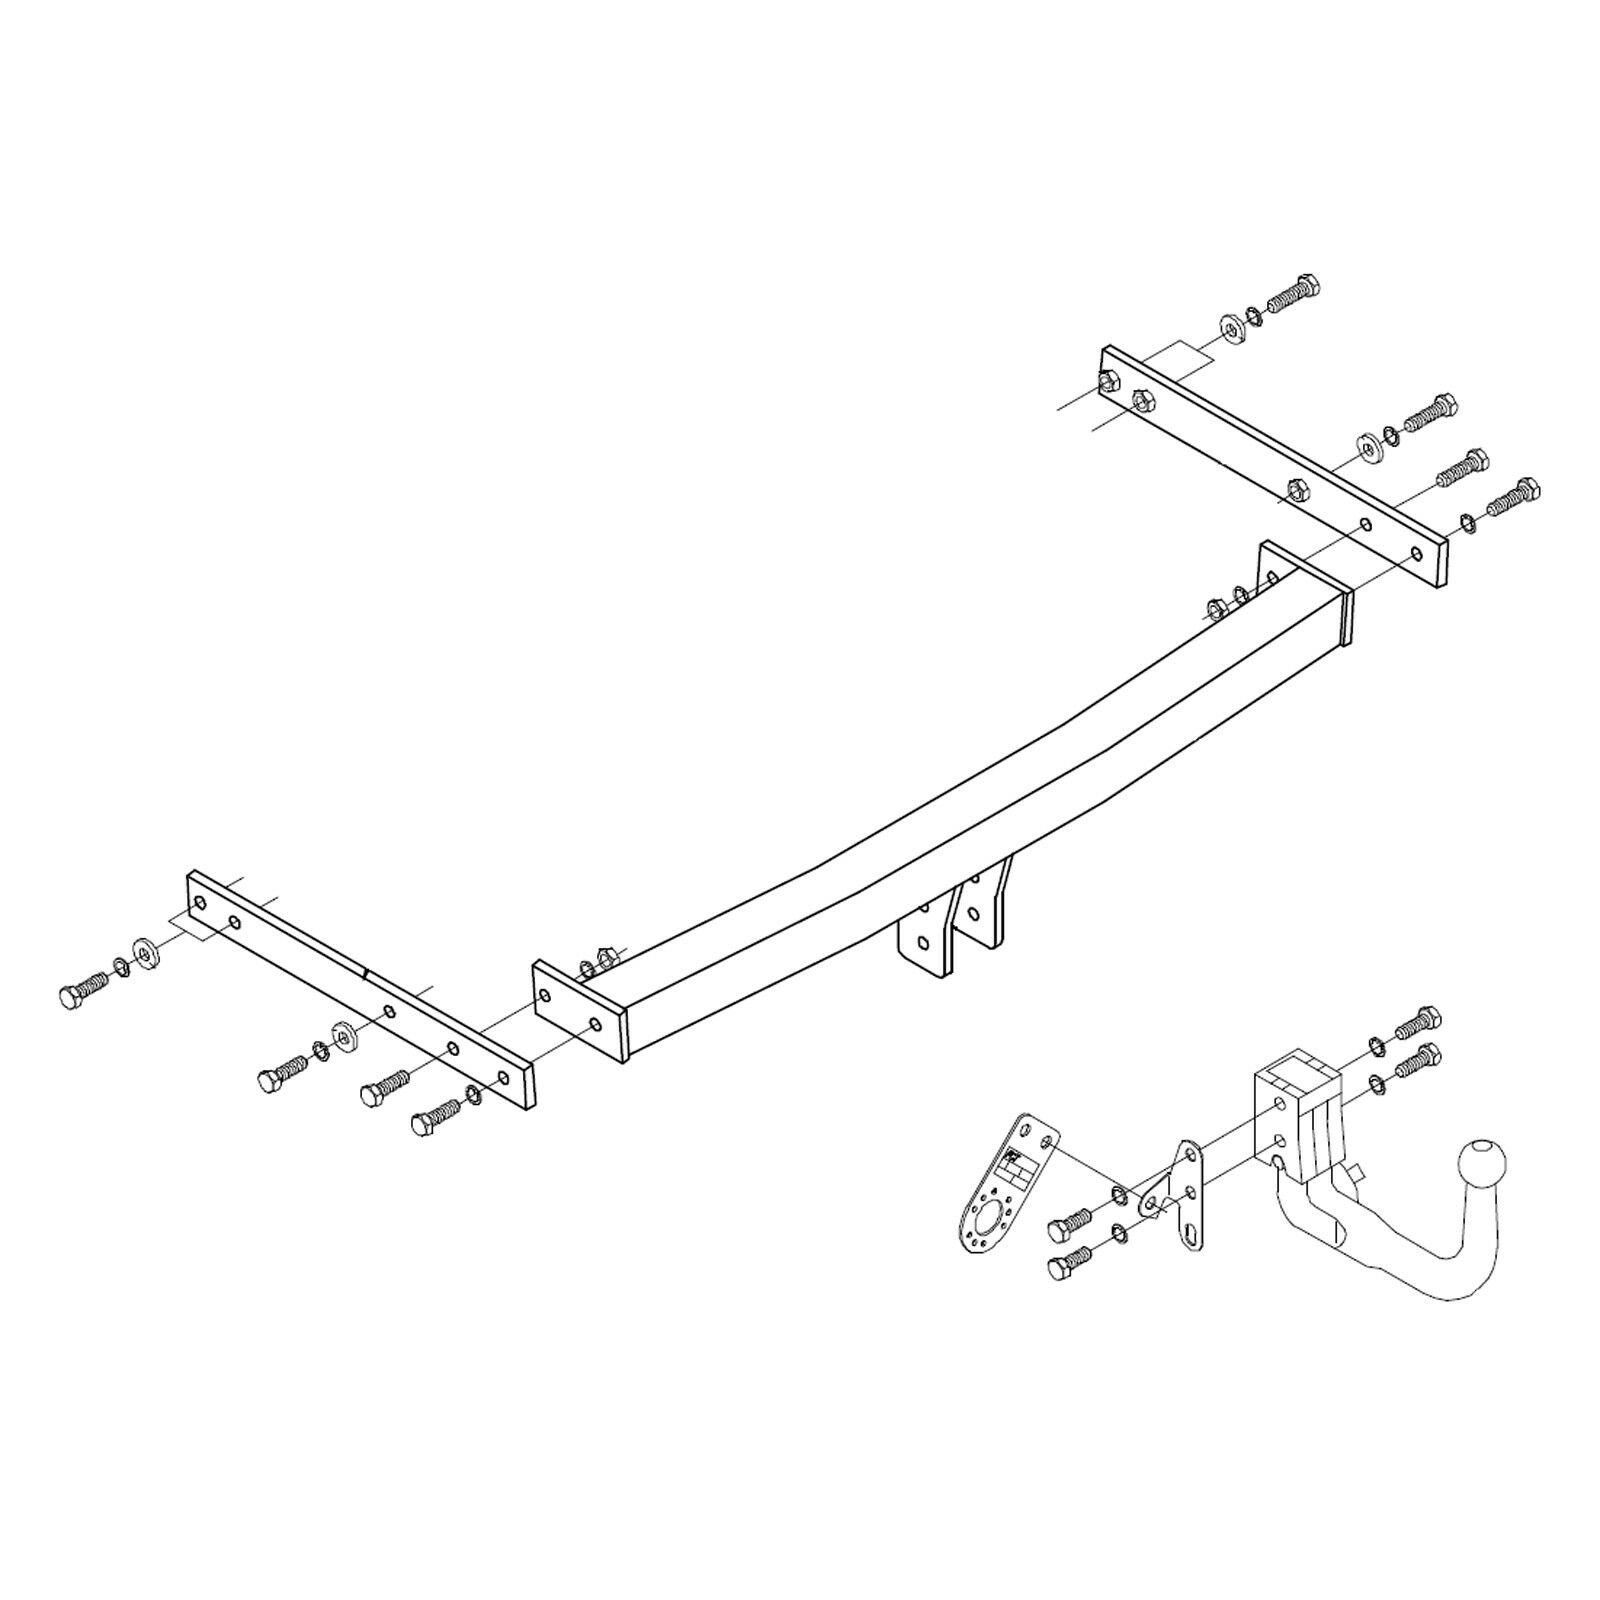 small resolution of details about towbar for skoda octavia estate 2005 2013 detachable swan neck tow bar